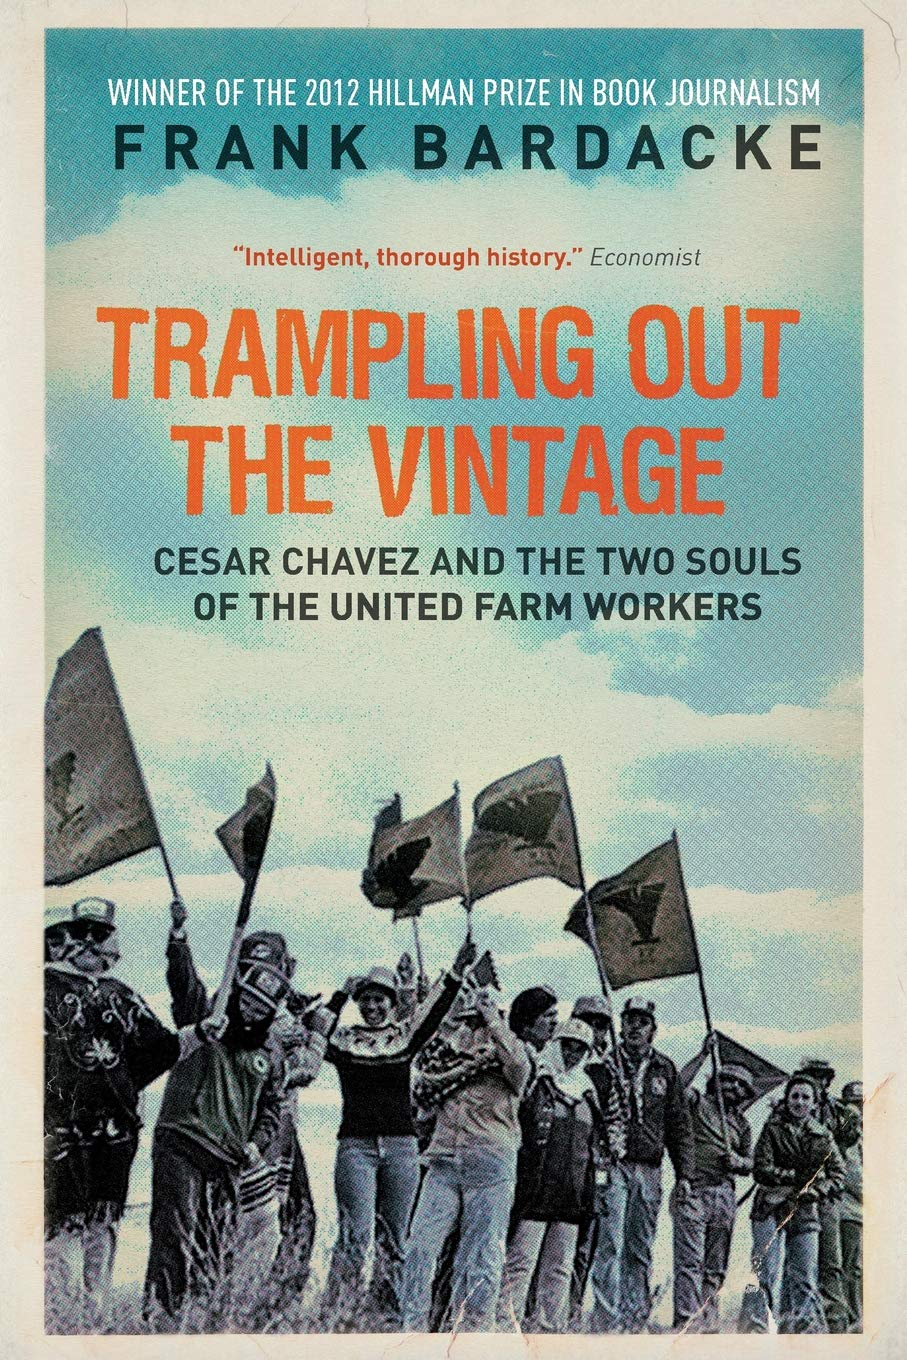 Trampling Out the Vintage: Cesar Chavez and the Two Souls of